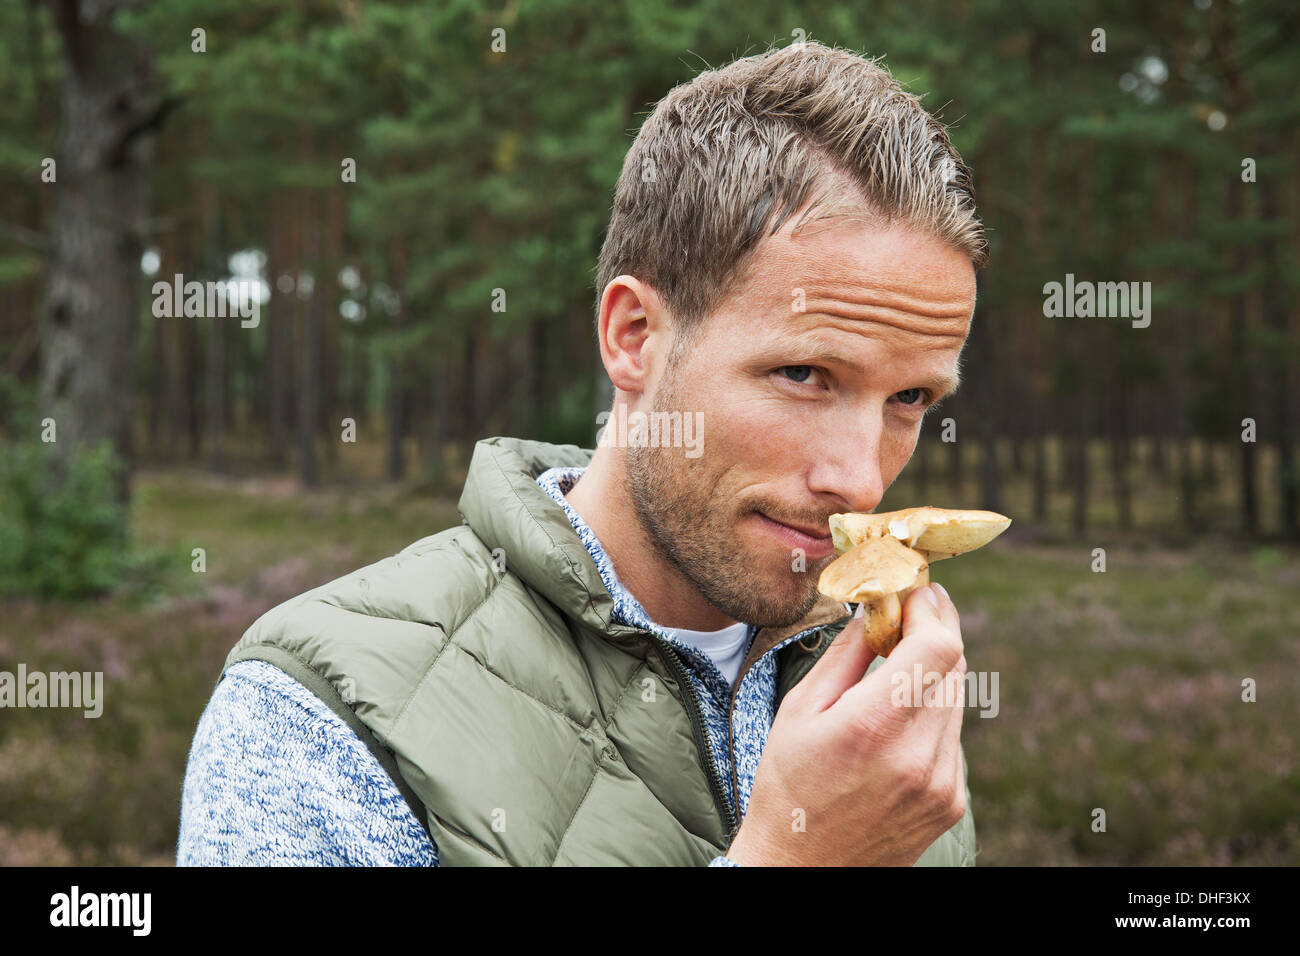 Mid adult man smelling mushroom - Stock Image